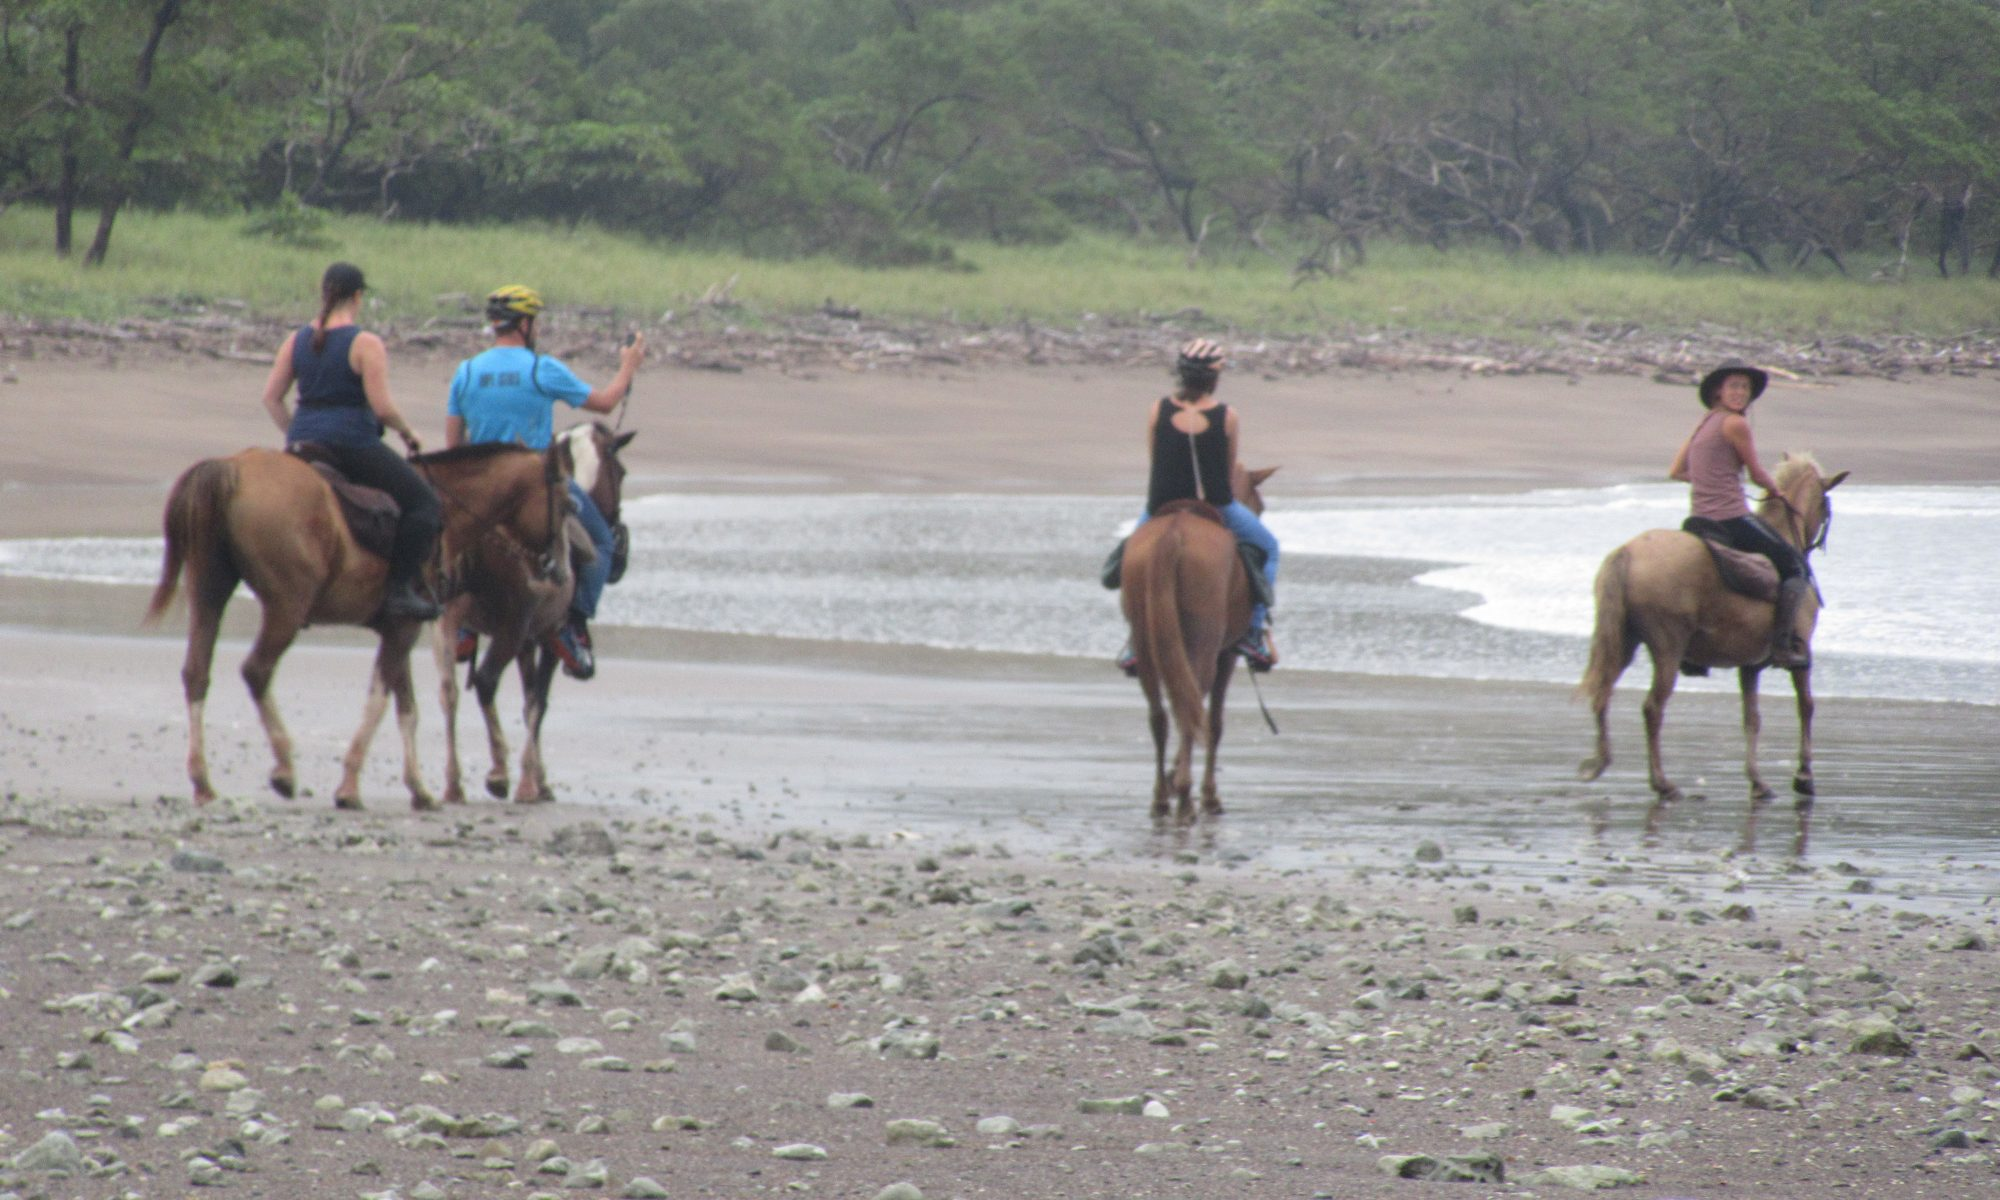 Horseback riding at the beach in Sámara with Costa Rica trips